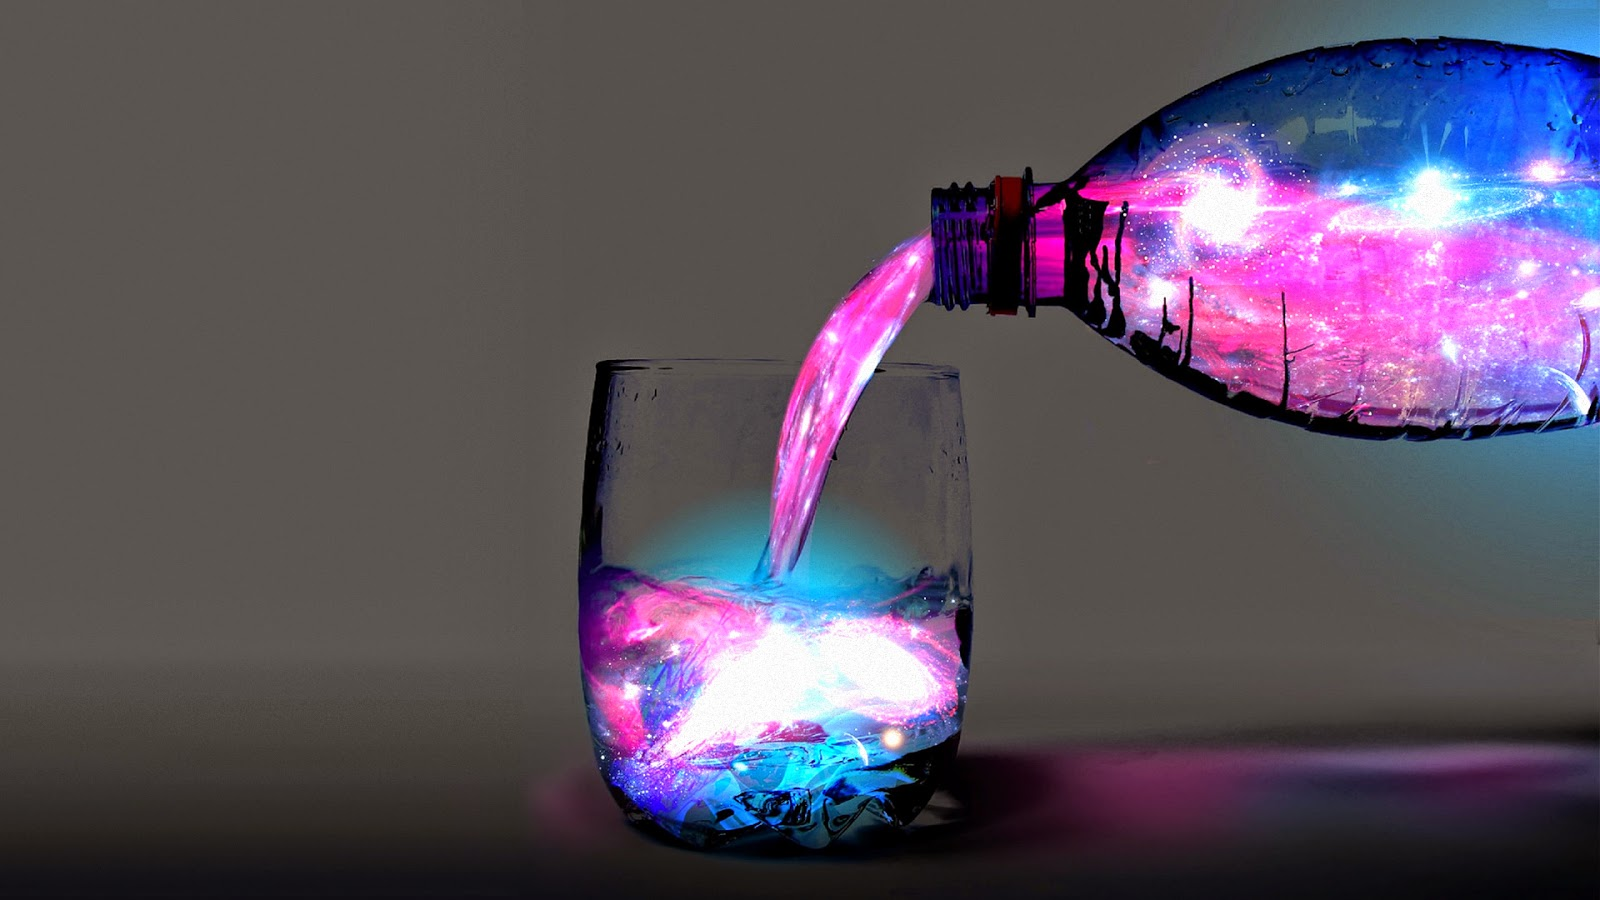 Abstract Colorfull Water hd wallpaper